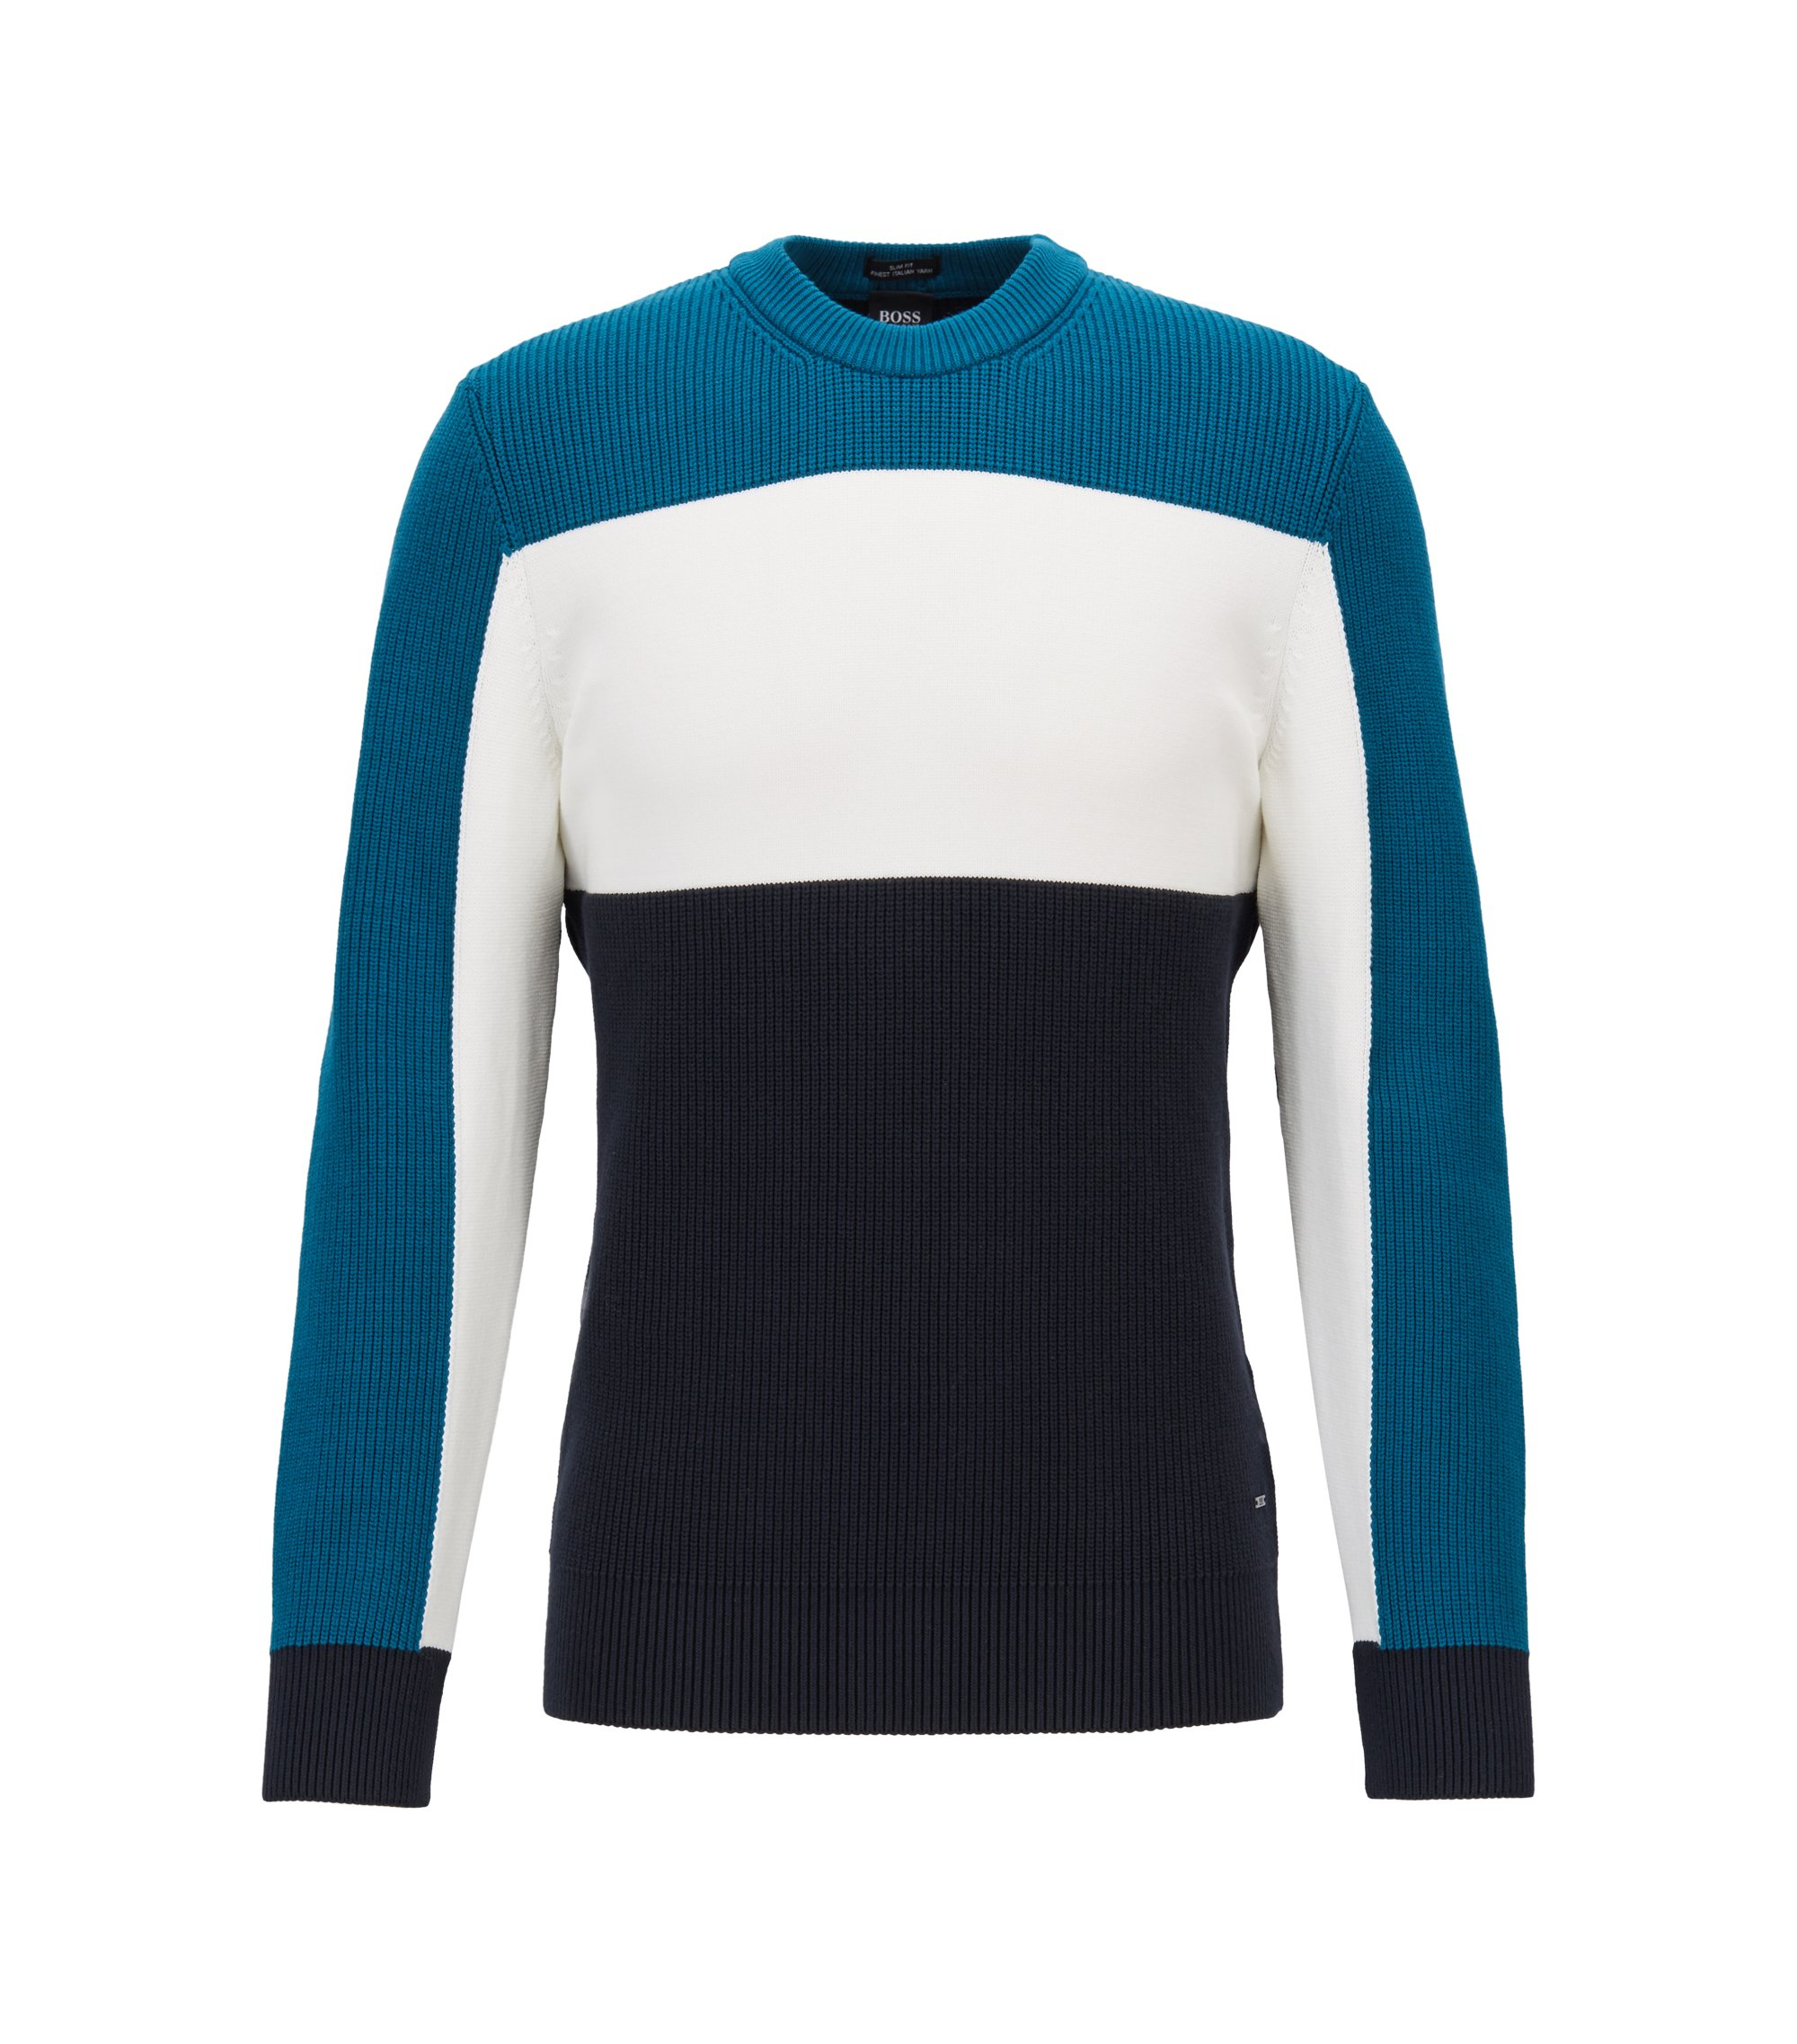 Slim-fit color-block sweater in mixed structures, Open Blue